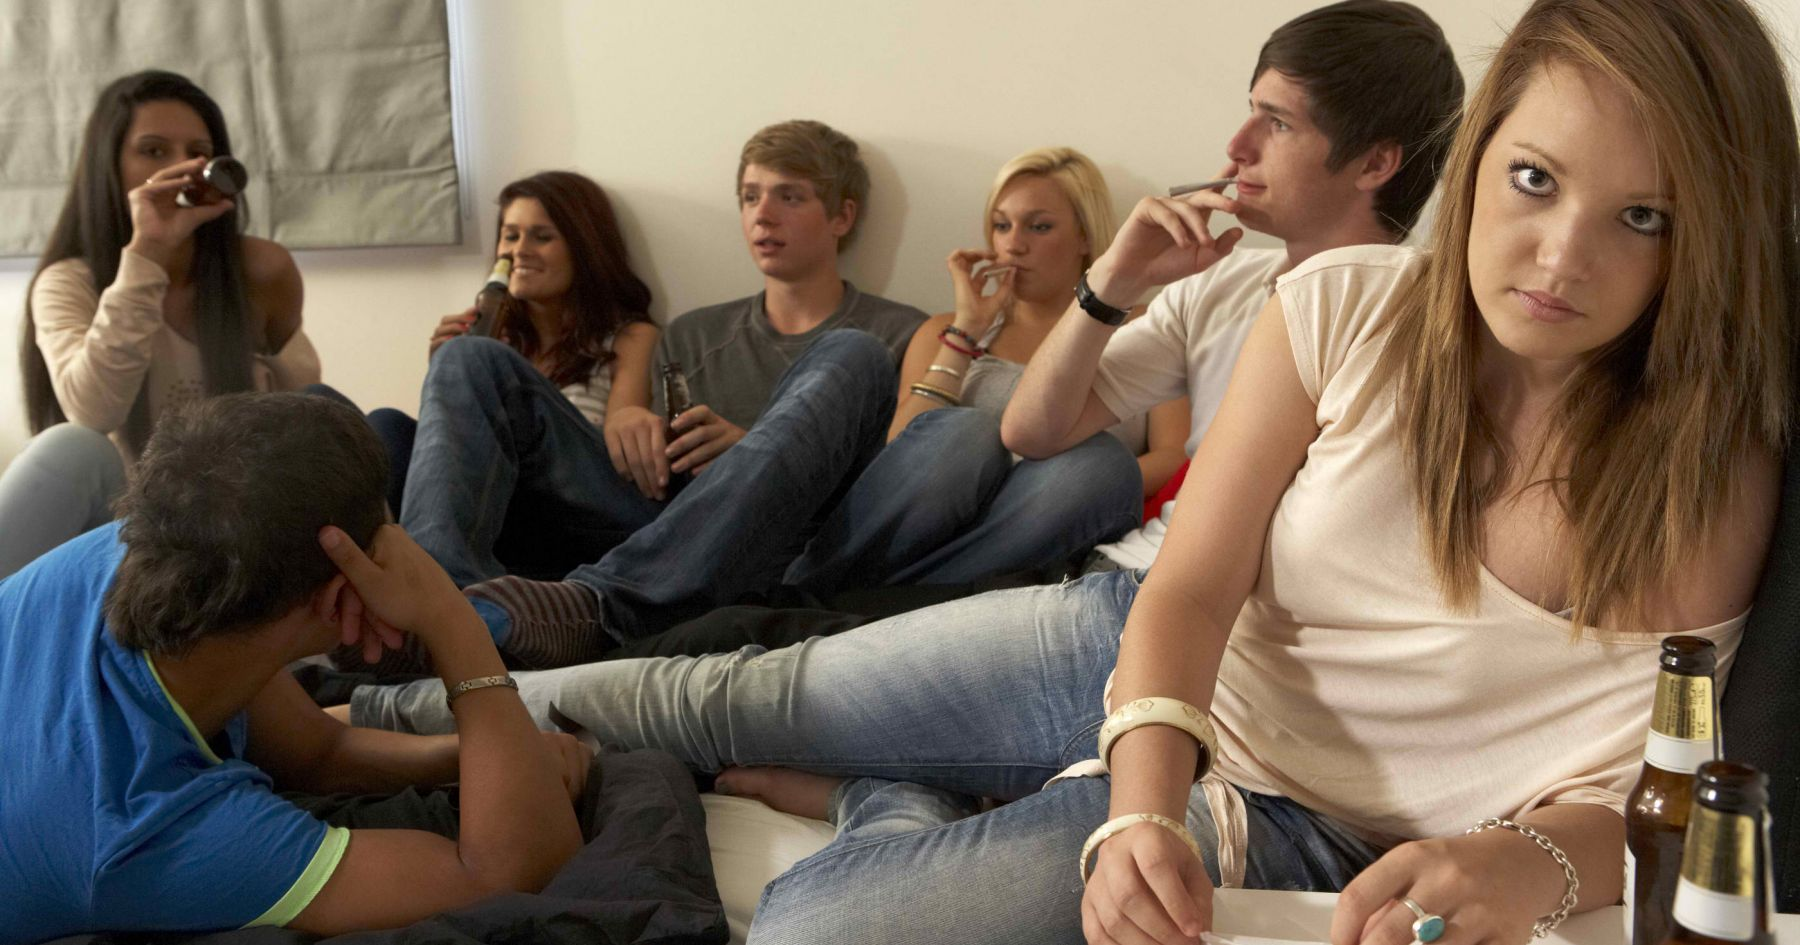 Image of young people smoking and drinking